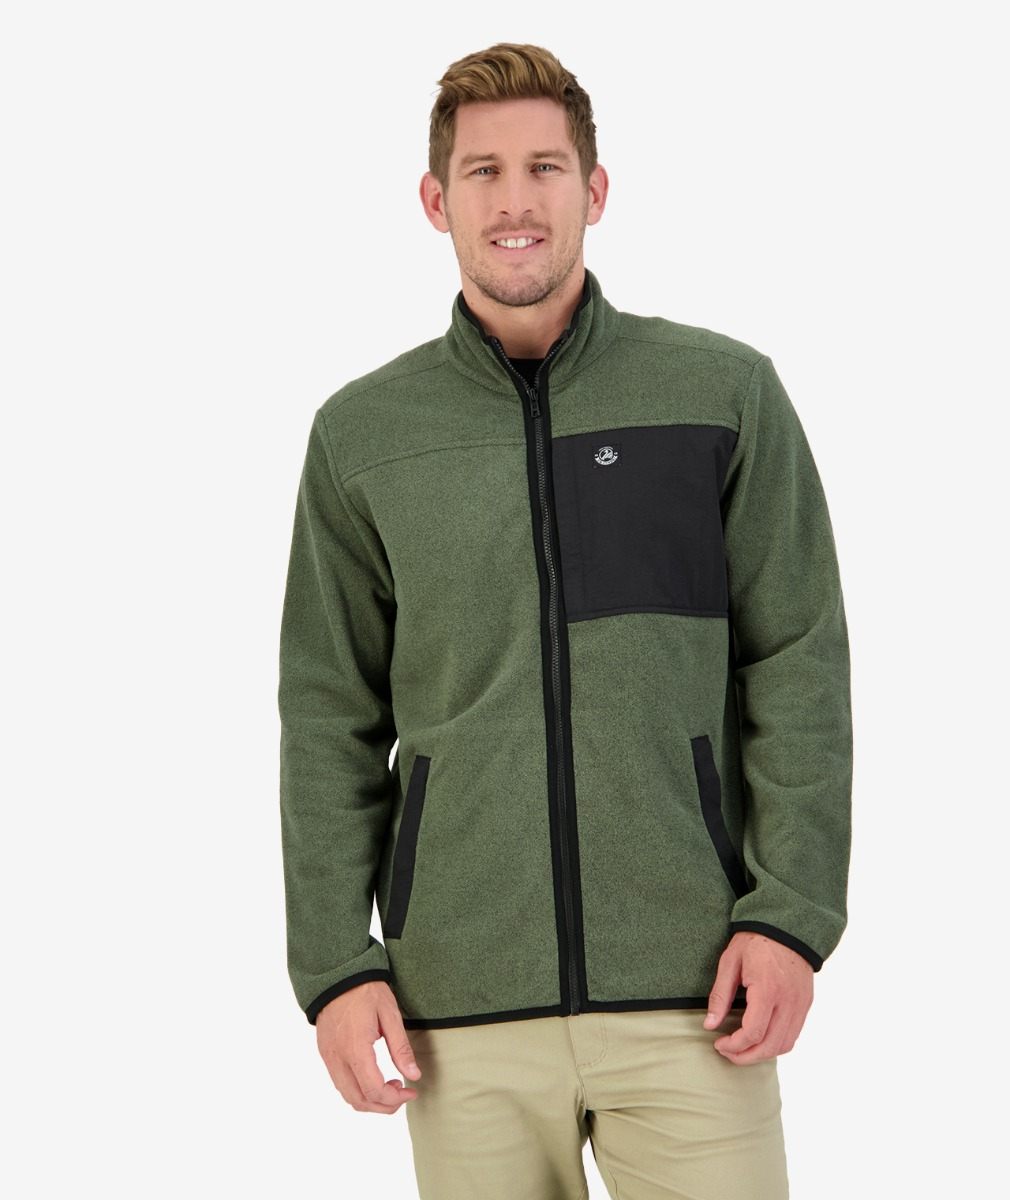 Hazelburn Fleece Jacket in Olive